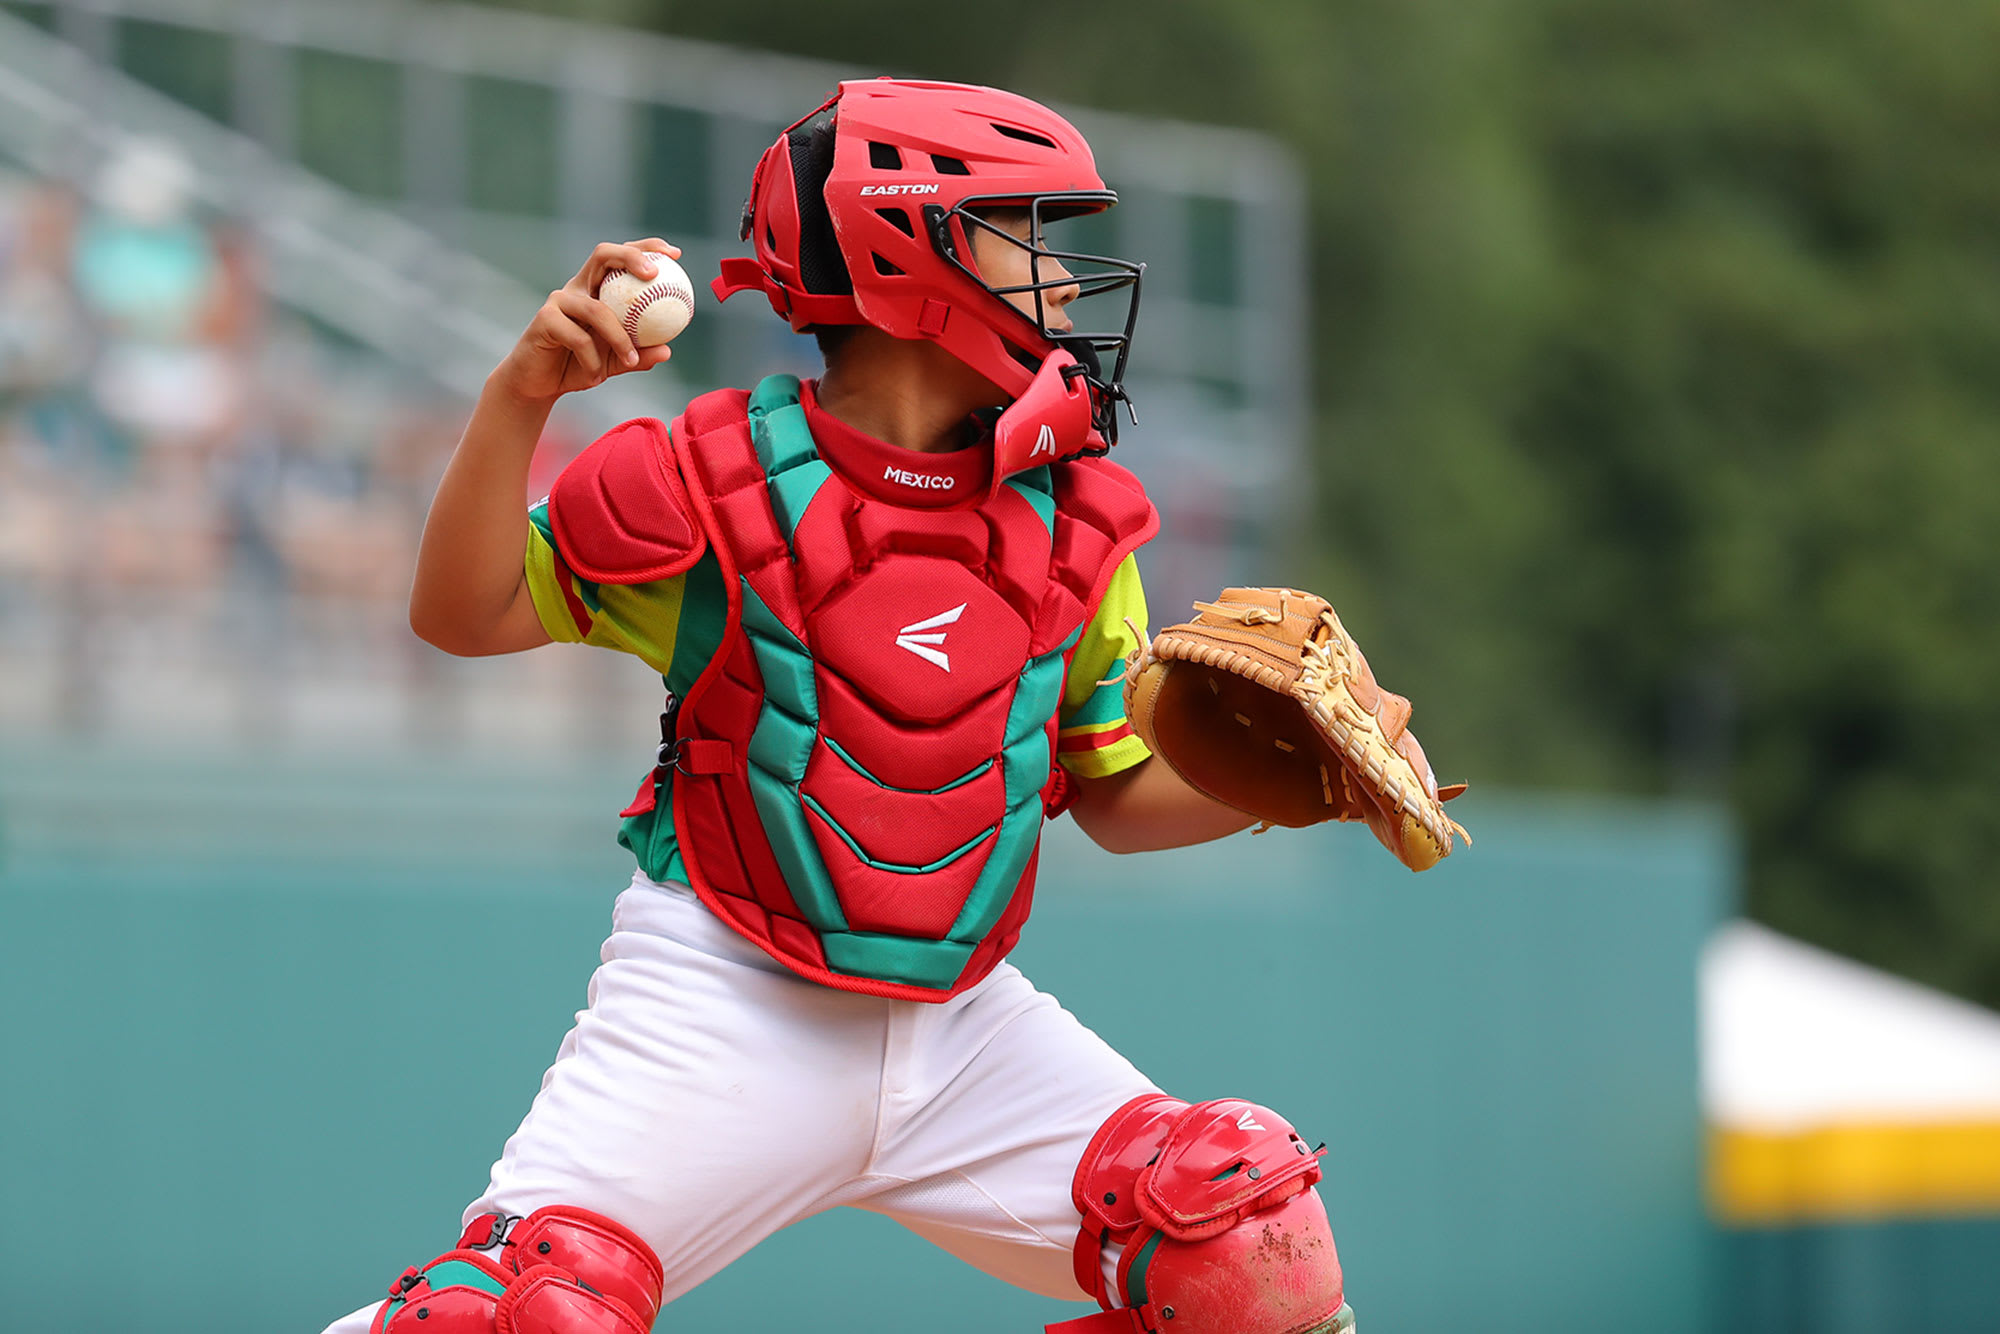 MEX catcher throwing